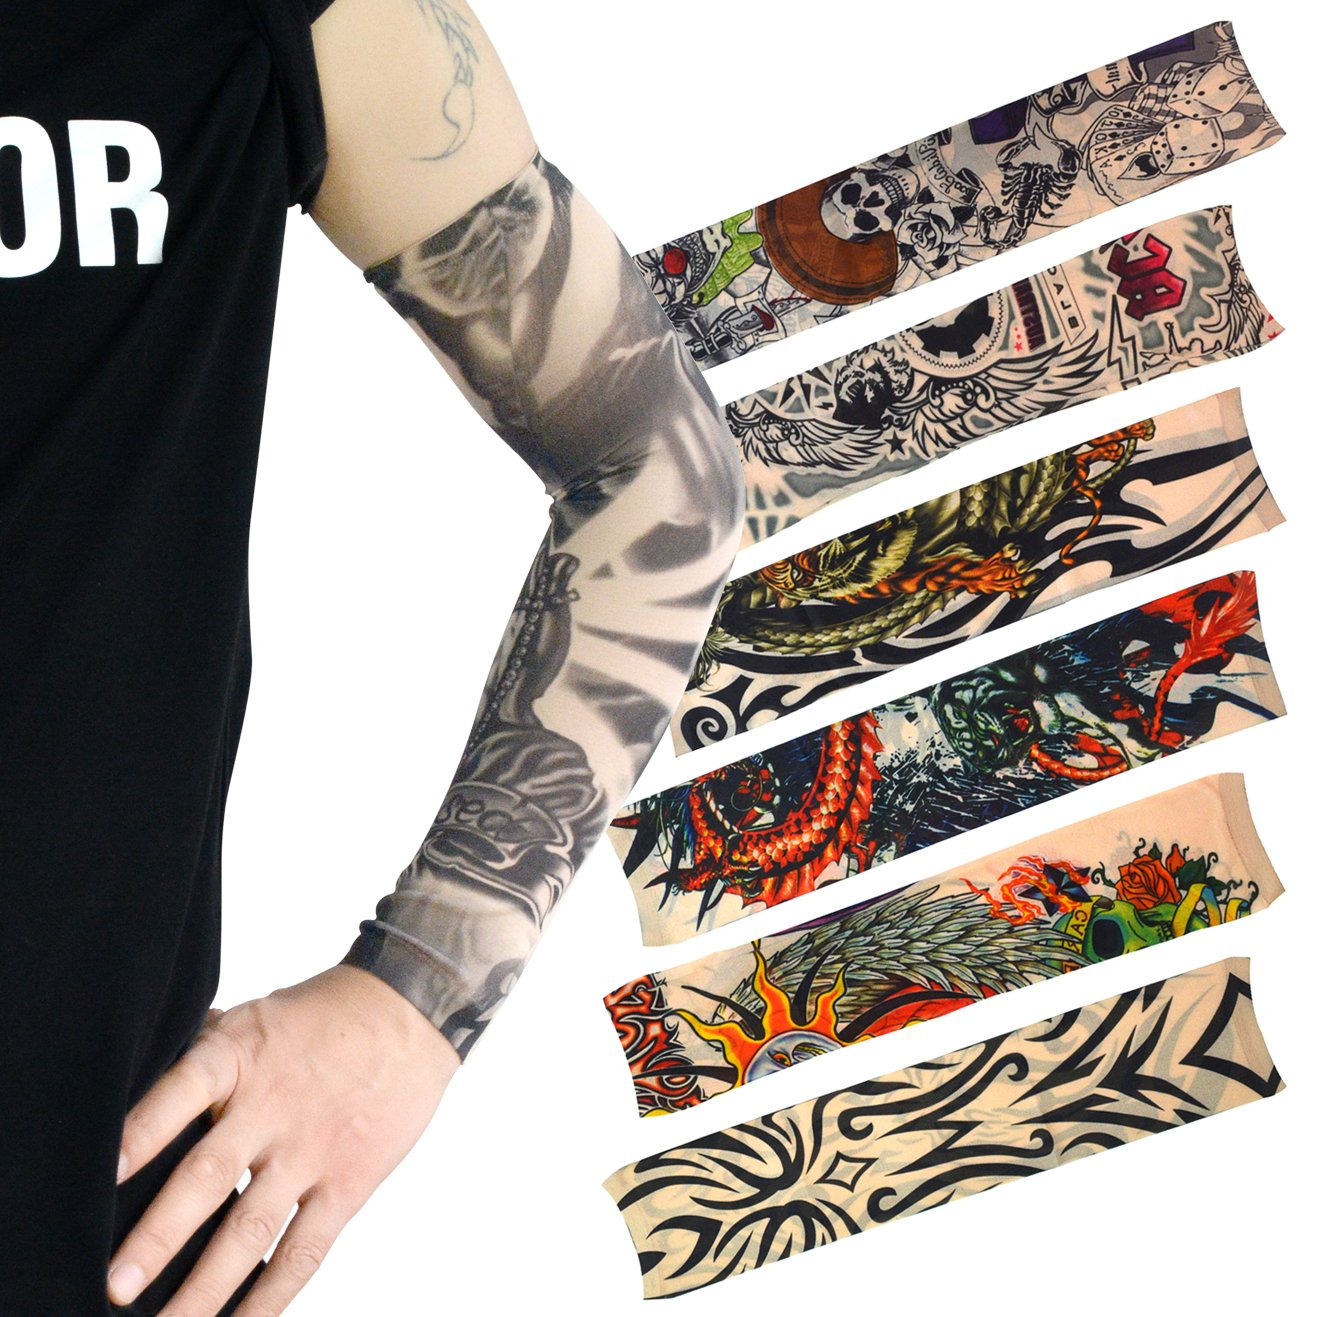 HOVEOX 20pcs Temporary Tattoo Arm Sleeves Arts Fake Slip on Arm Sunscreen Sleeves Body Art Stockings Protector -Designs Tribal, Tiger, Dragon, Skull, and Etc Unisex Stretchable Cosplay Accessories by HOVEOX (Image #2)